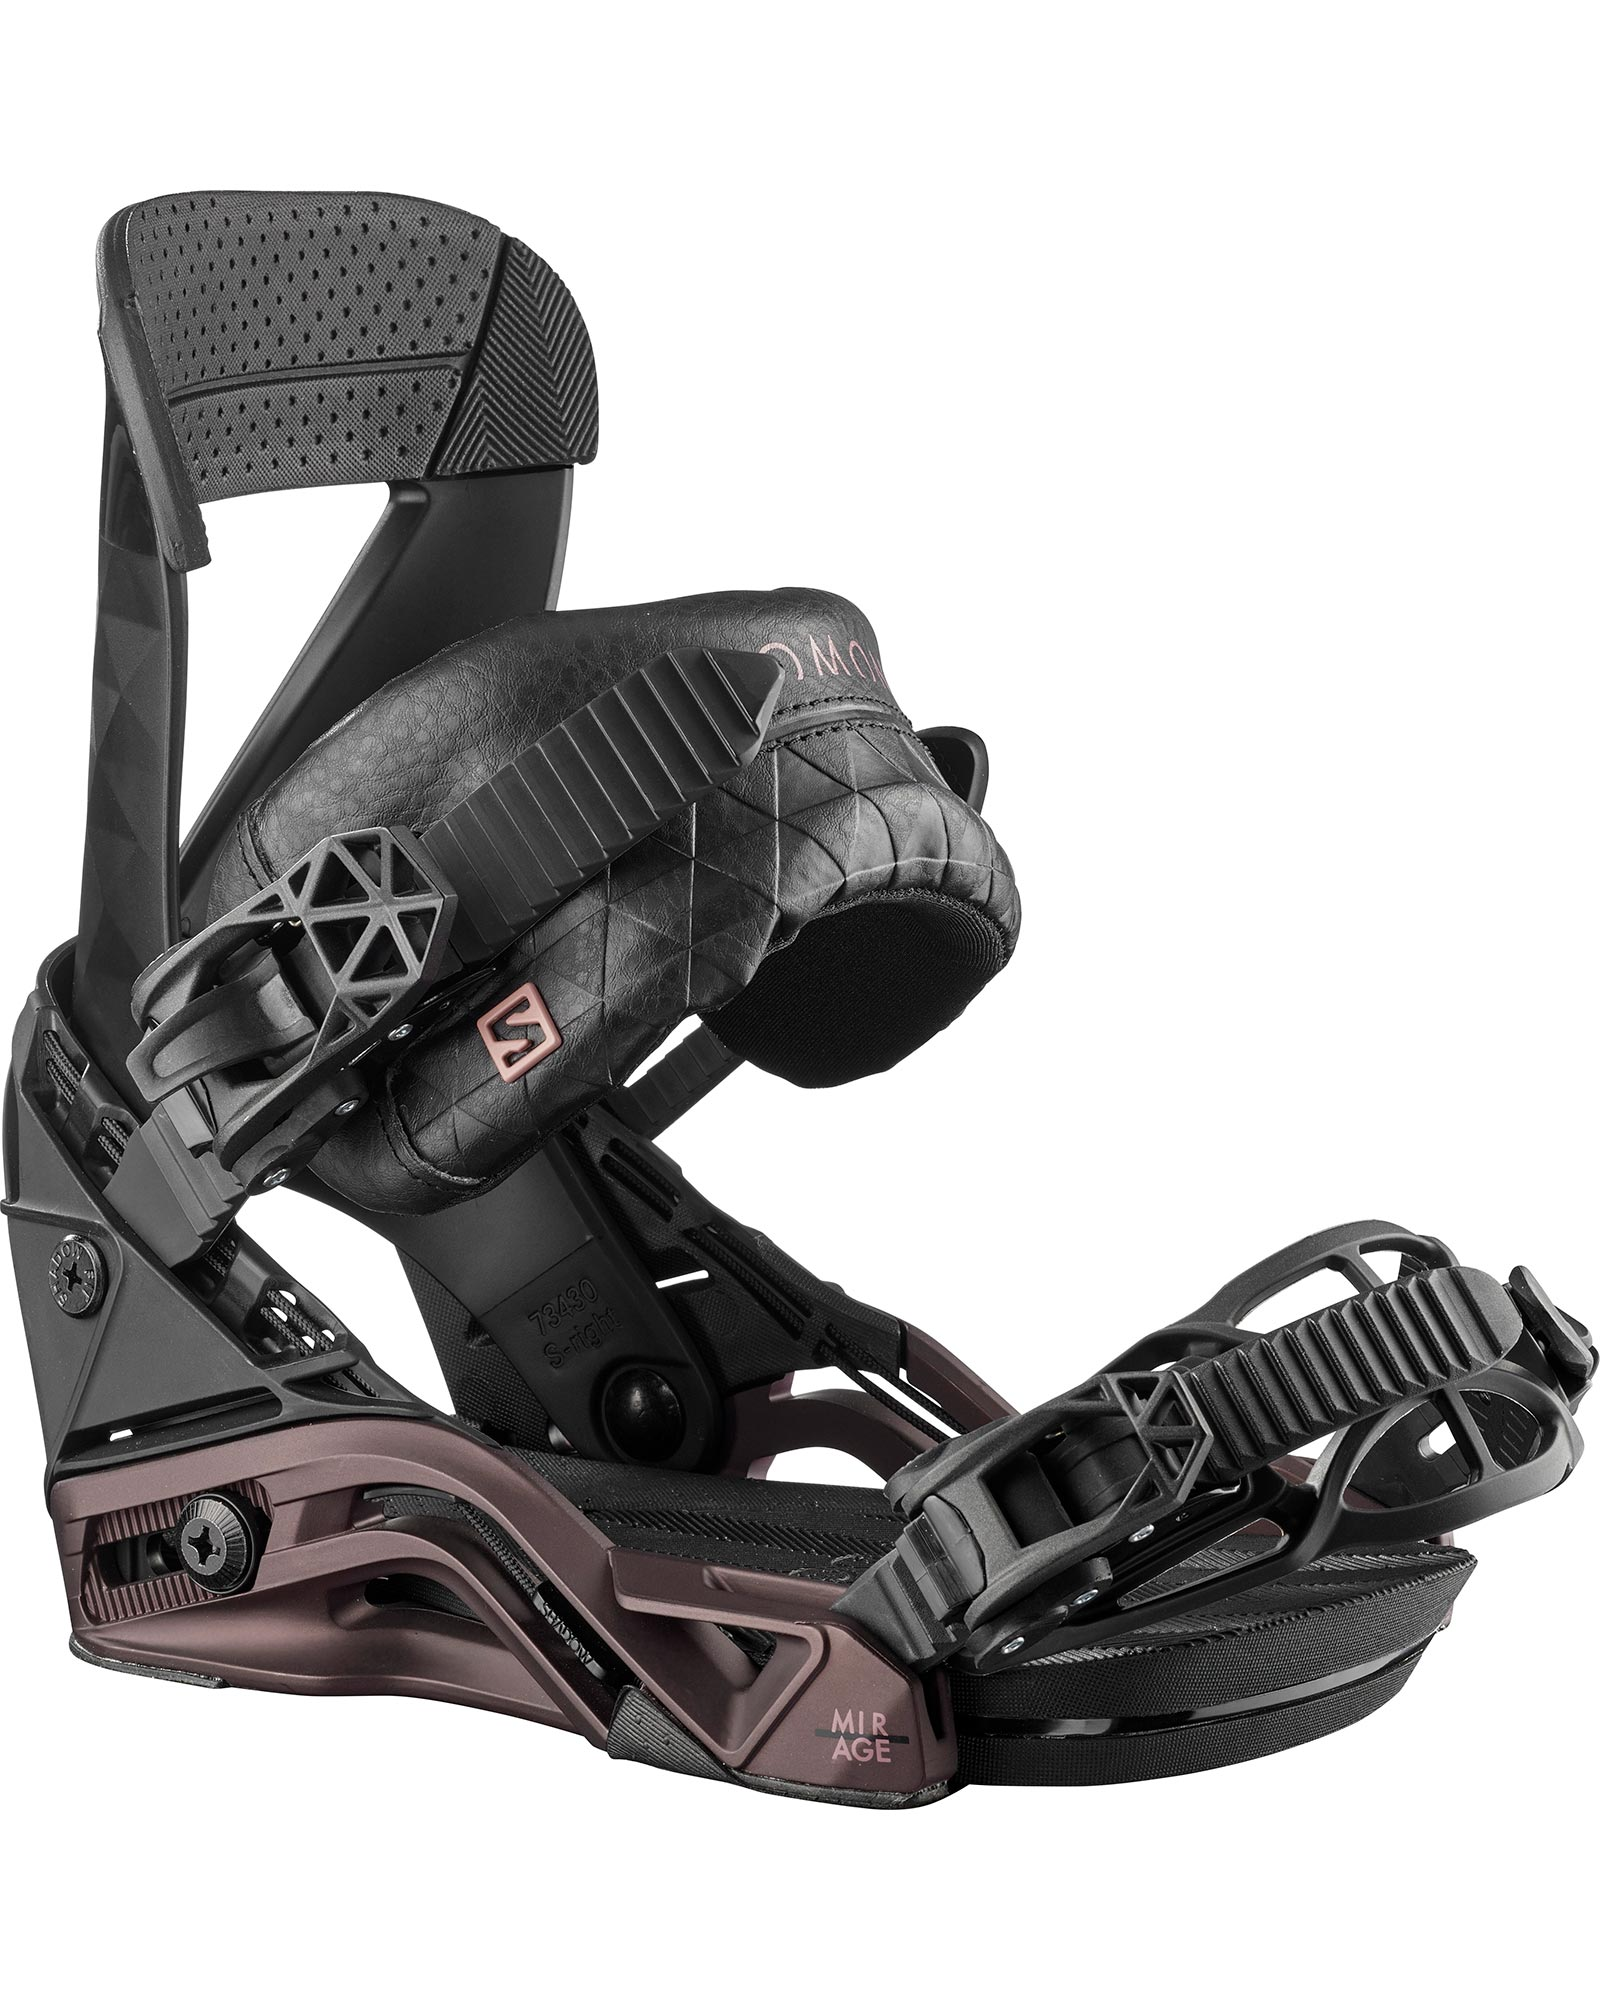 Salomon Snowboards Women's Mirage Snowboard Bindings 2020 / 2021 0